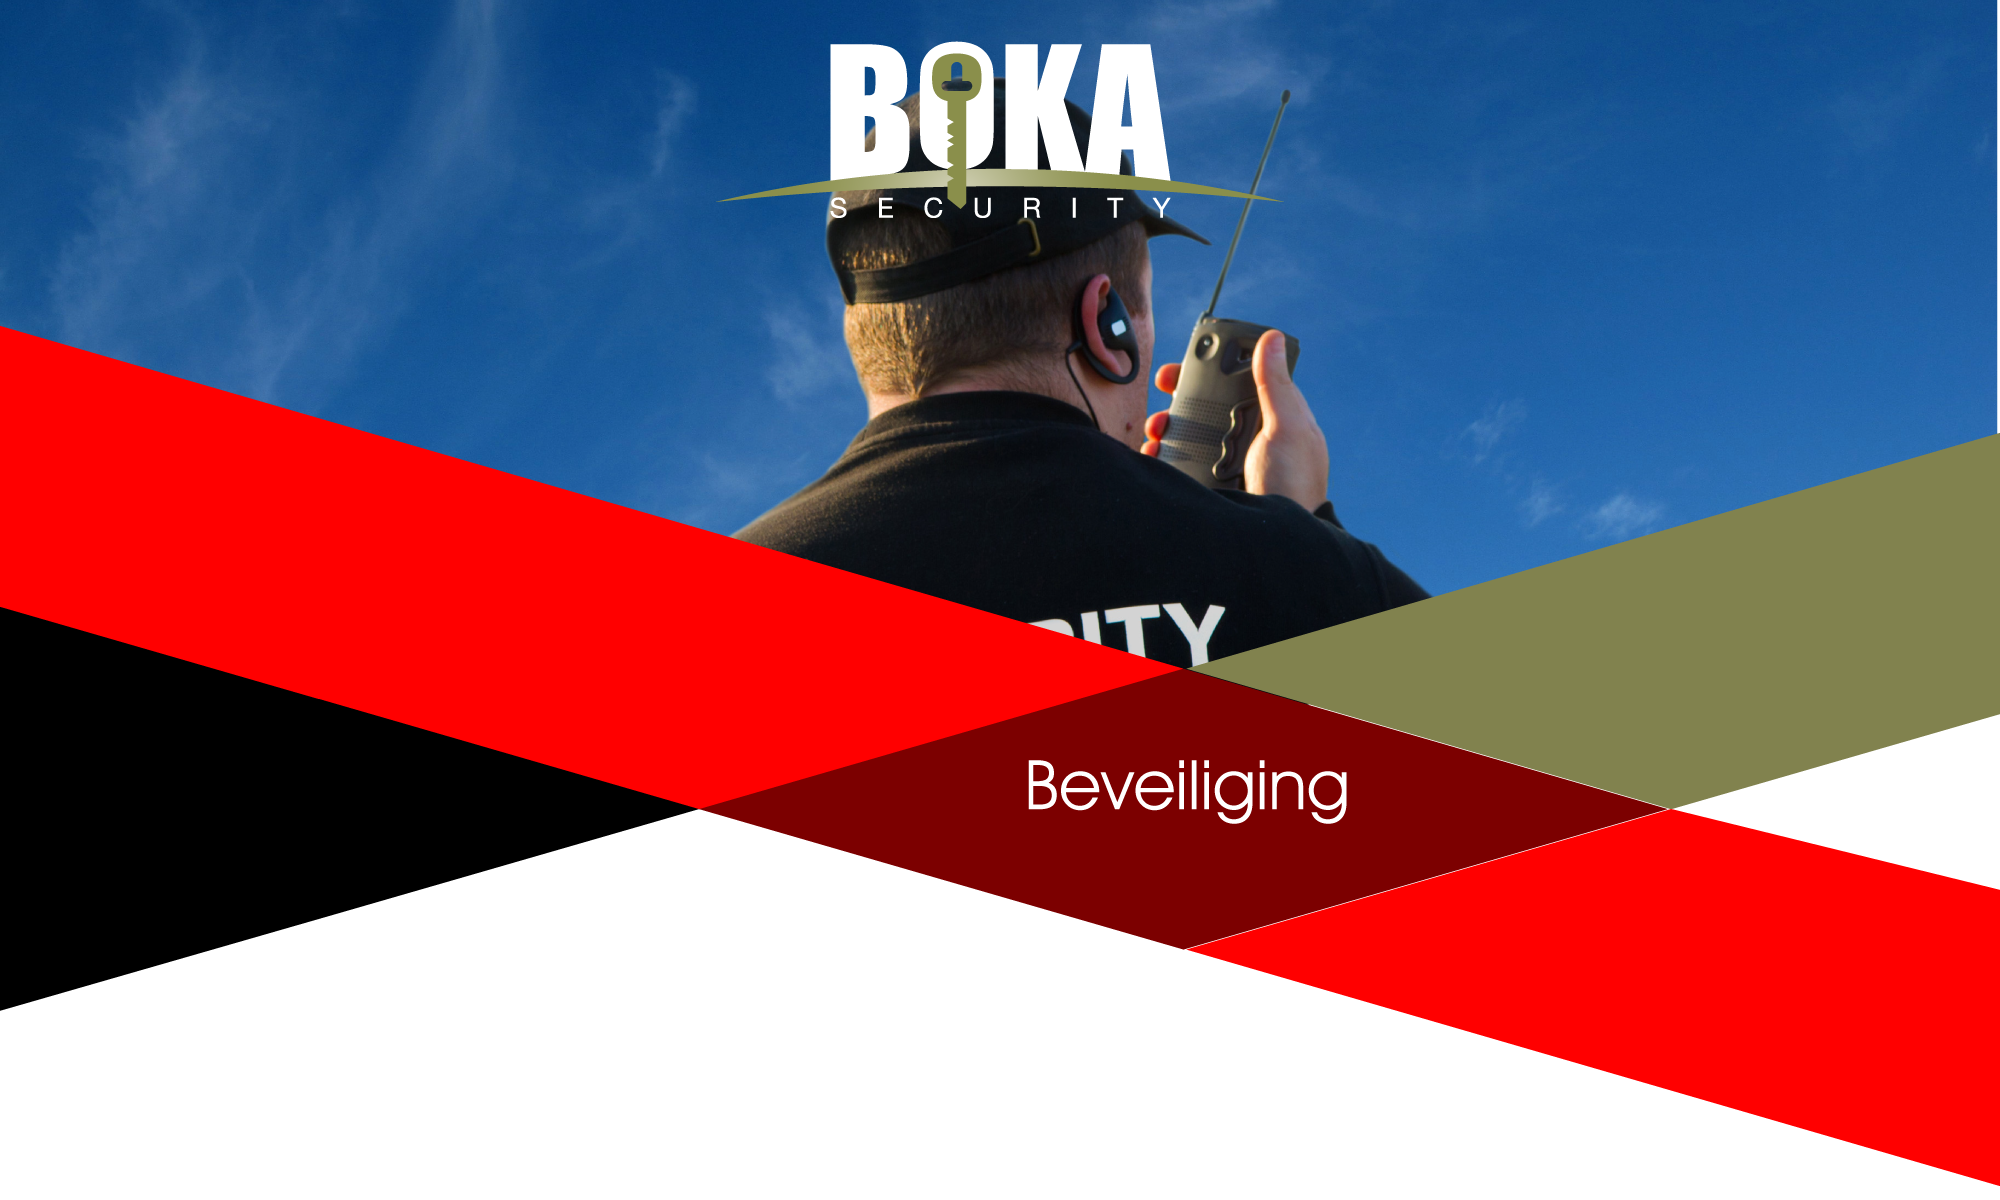 boka security